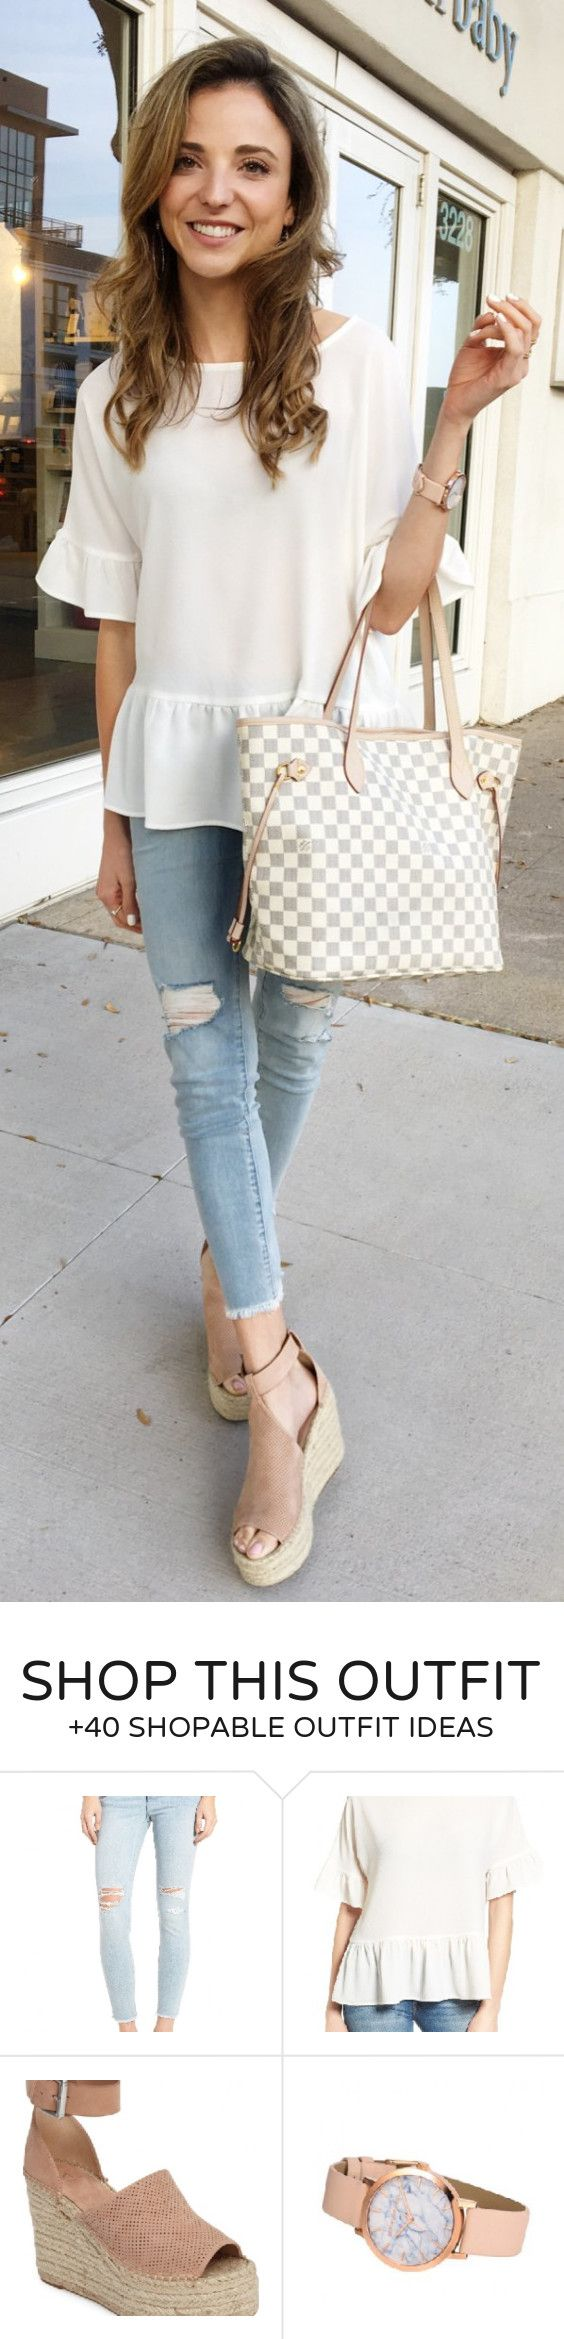 #spring #fashion / White Top / White Checked Tote Bag / Ripped Skinny Jeans / Beige Platform Pumps